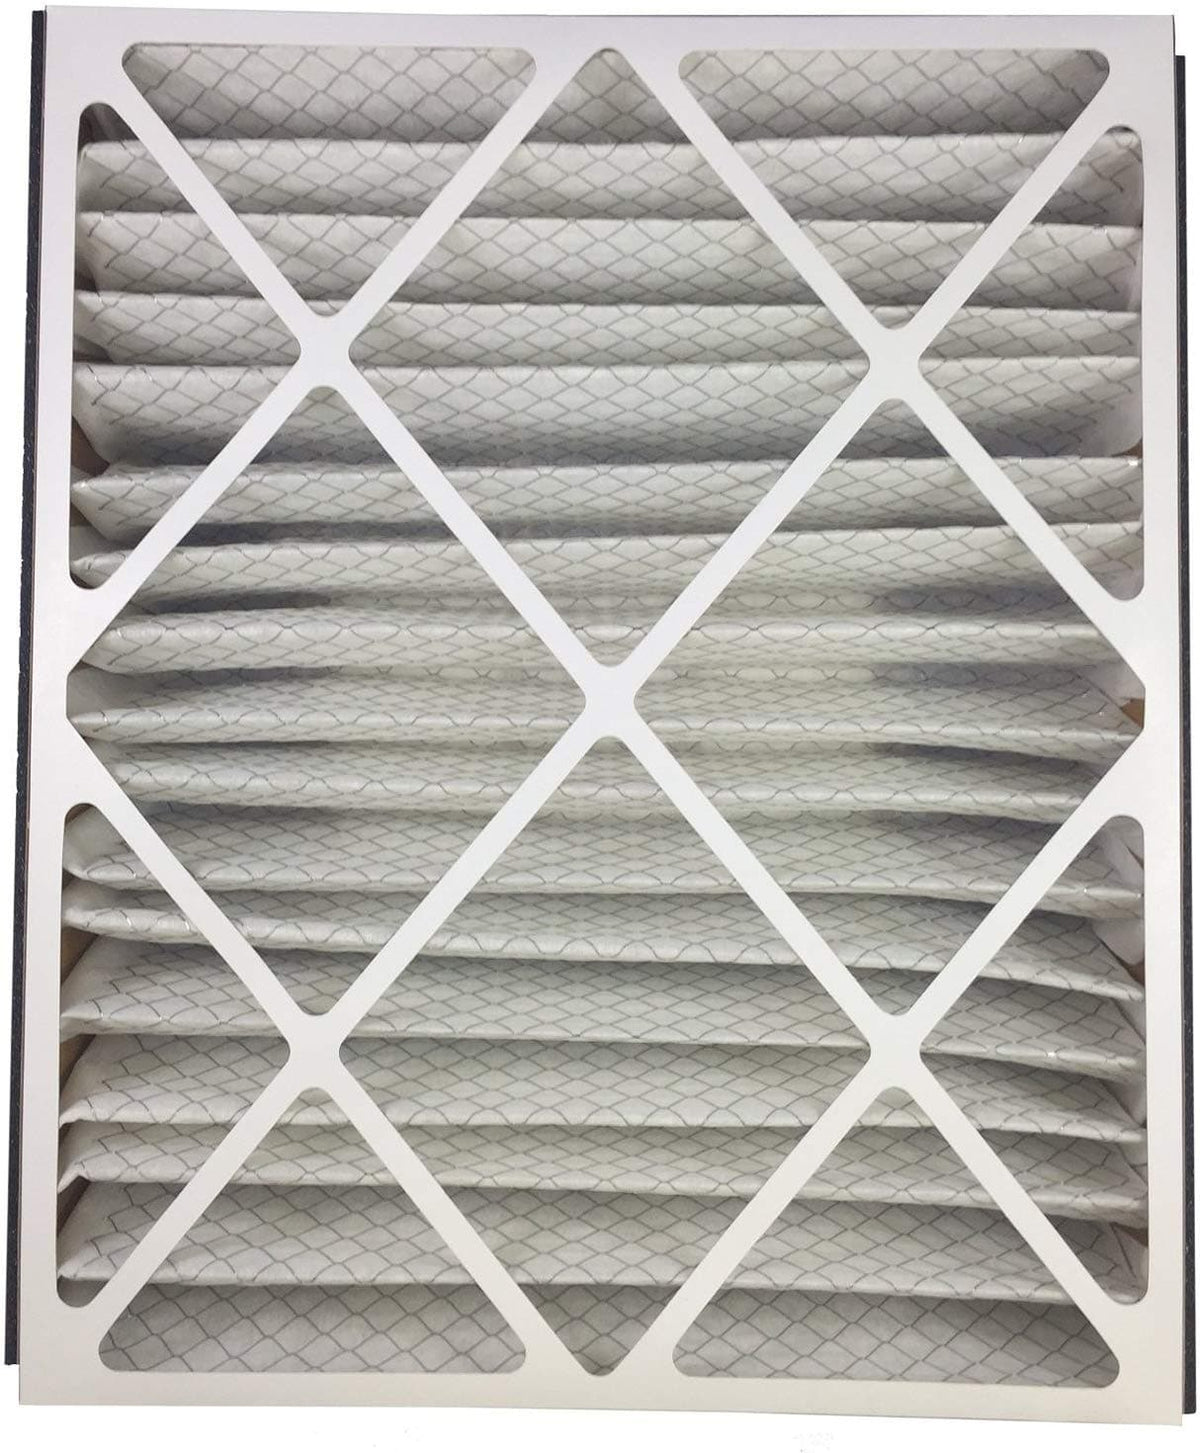 Atomic 266649-102 Trion Air Bear 20x25x5 MERV 13 Compatible Replacement Filter - 2 Pack